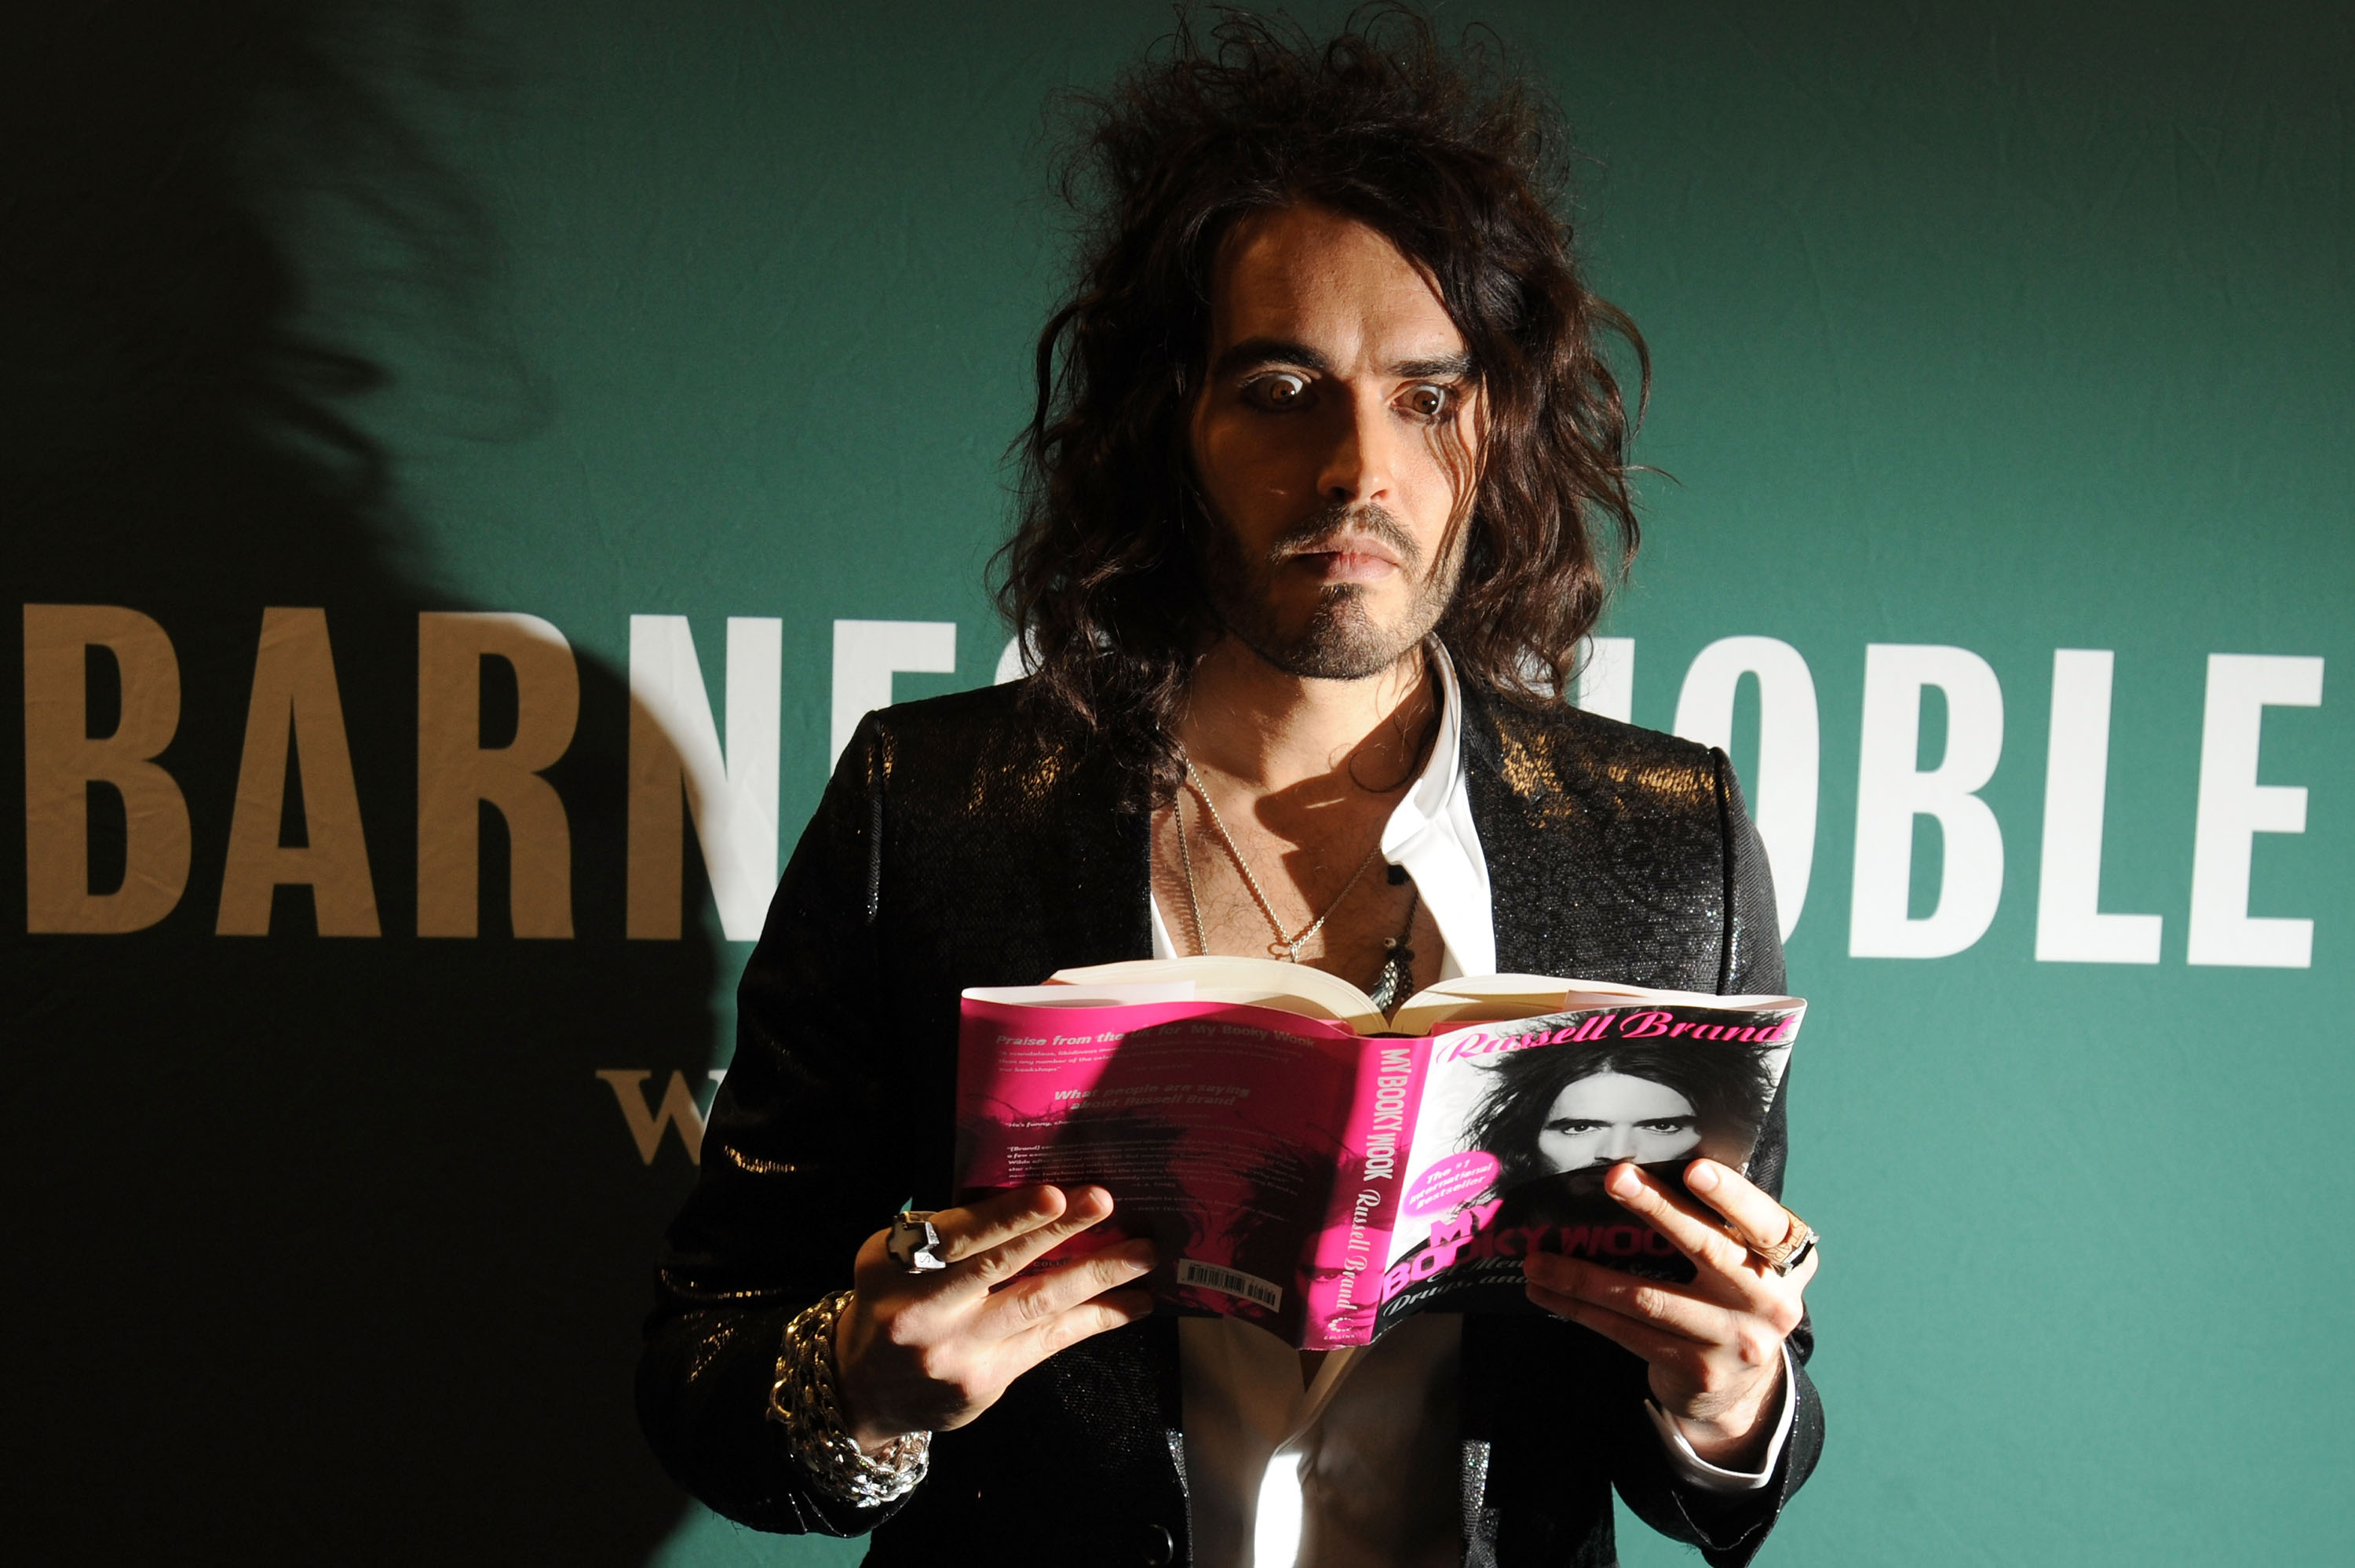 Russell Brand facts